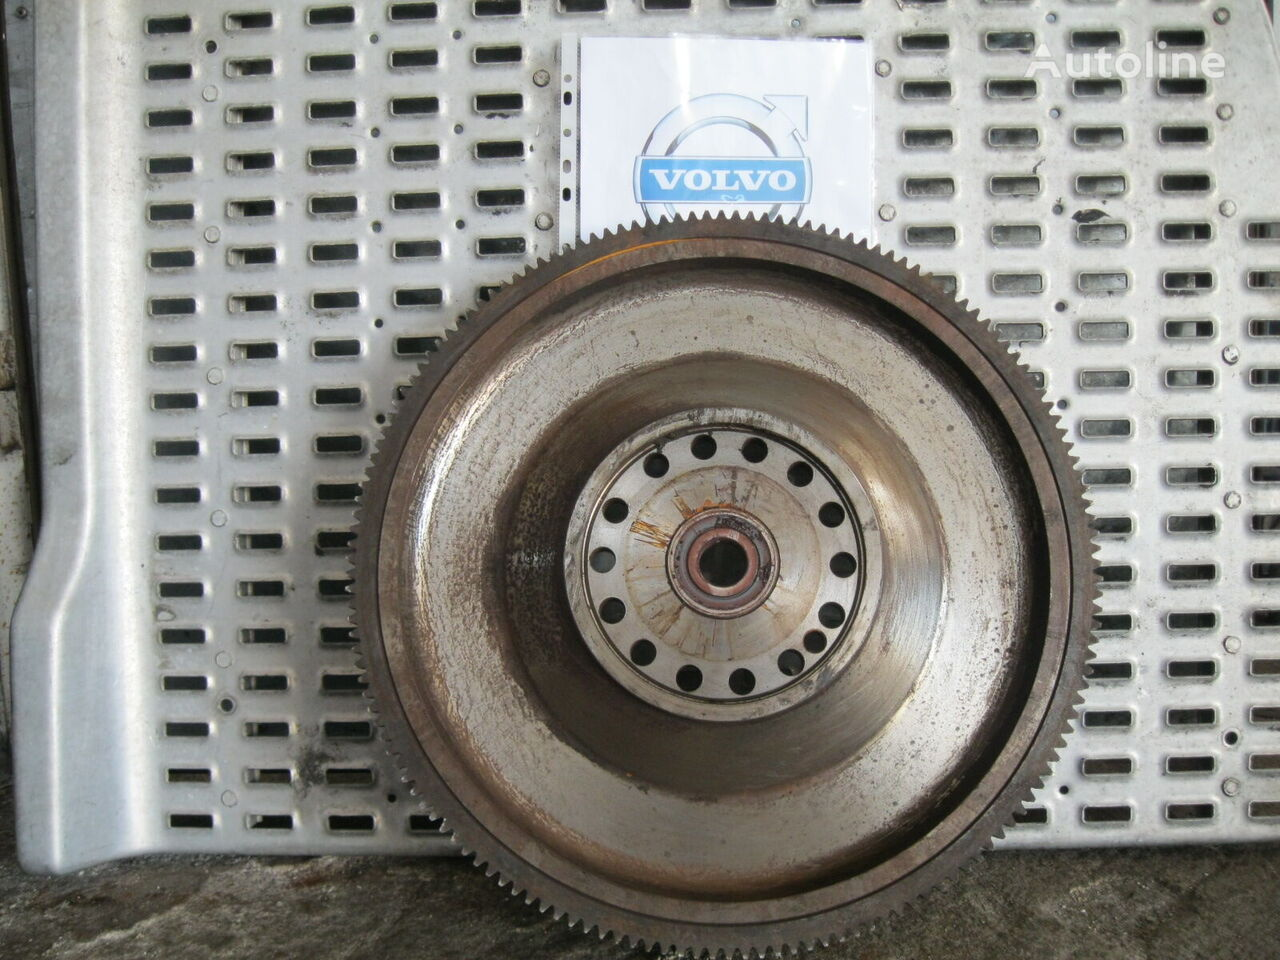 VOLVO D13 C1A 460 EUV flywheel for VOLVO FH 13 tractor unit